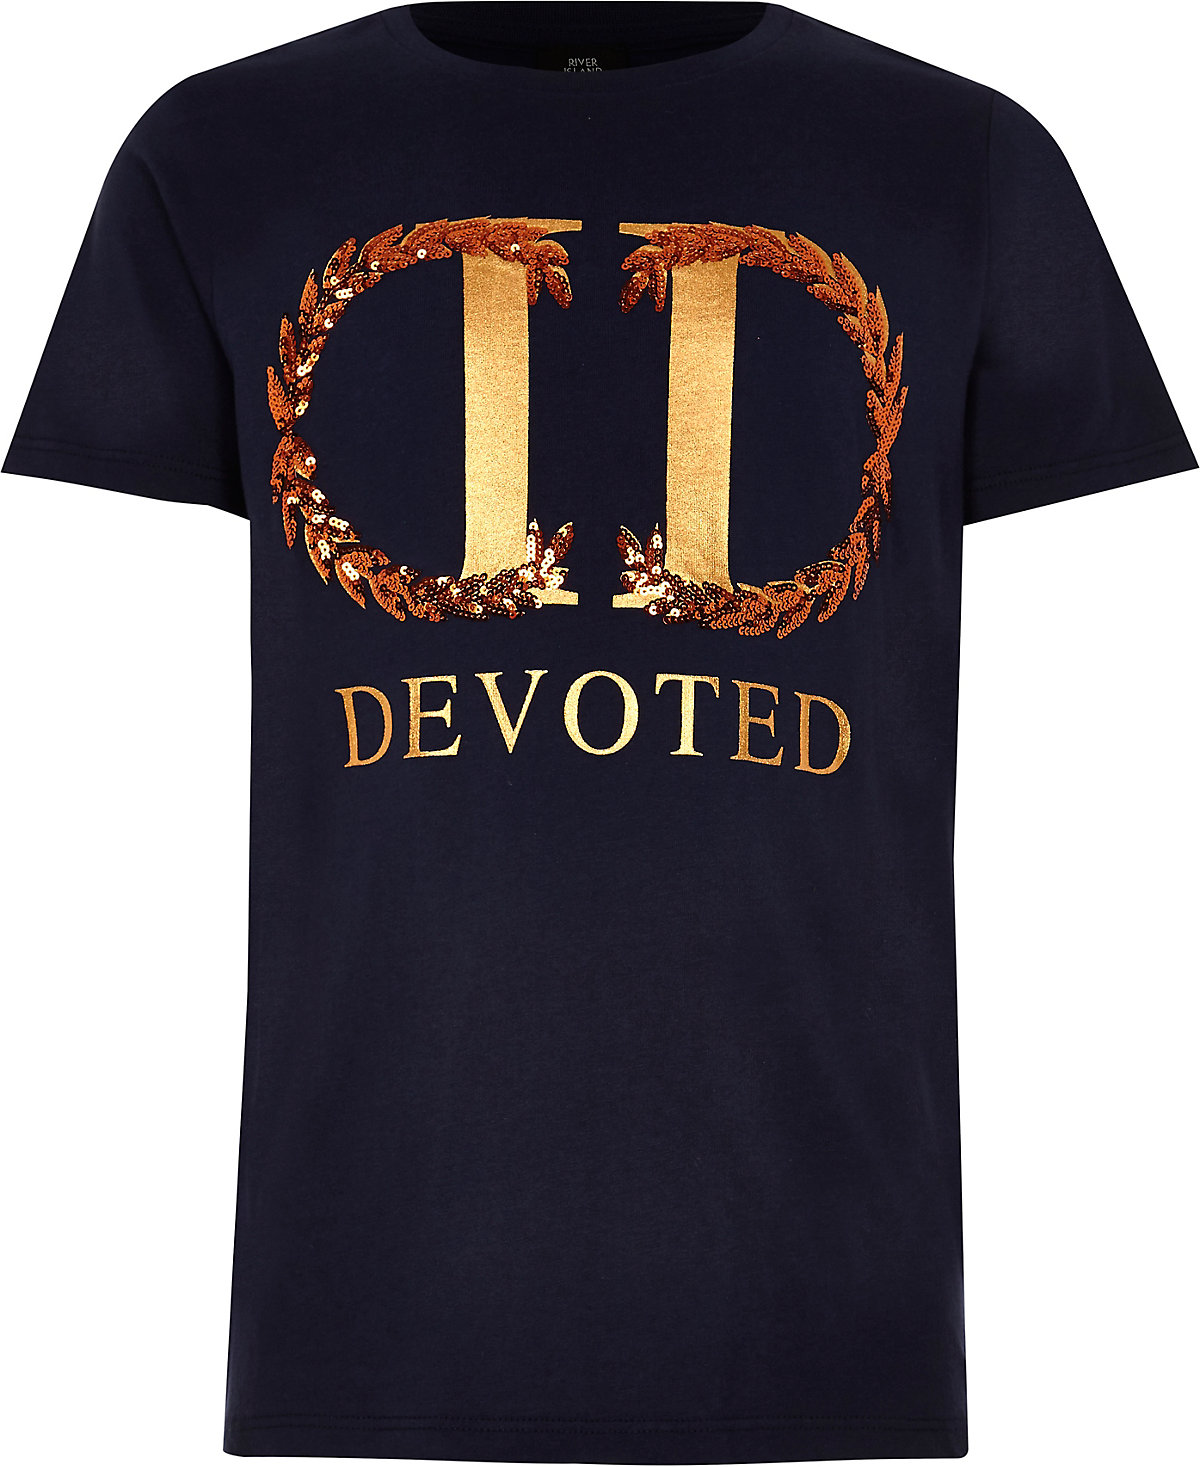 Boys navy 'devoted' front print T-shirt